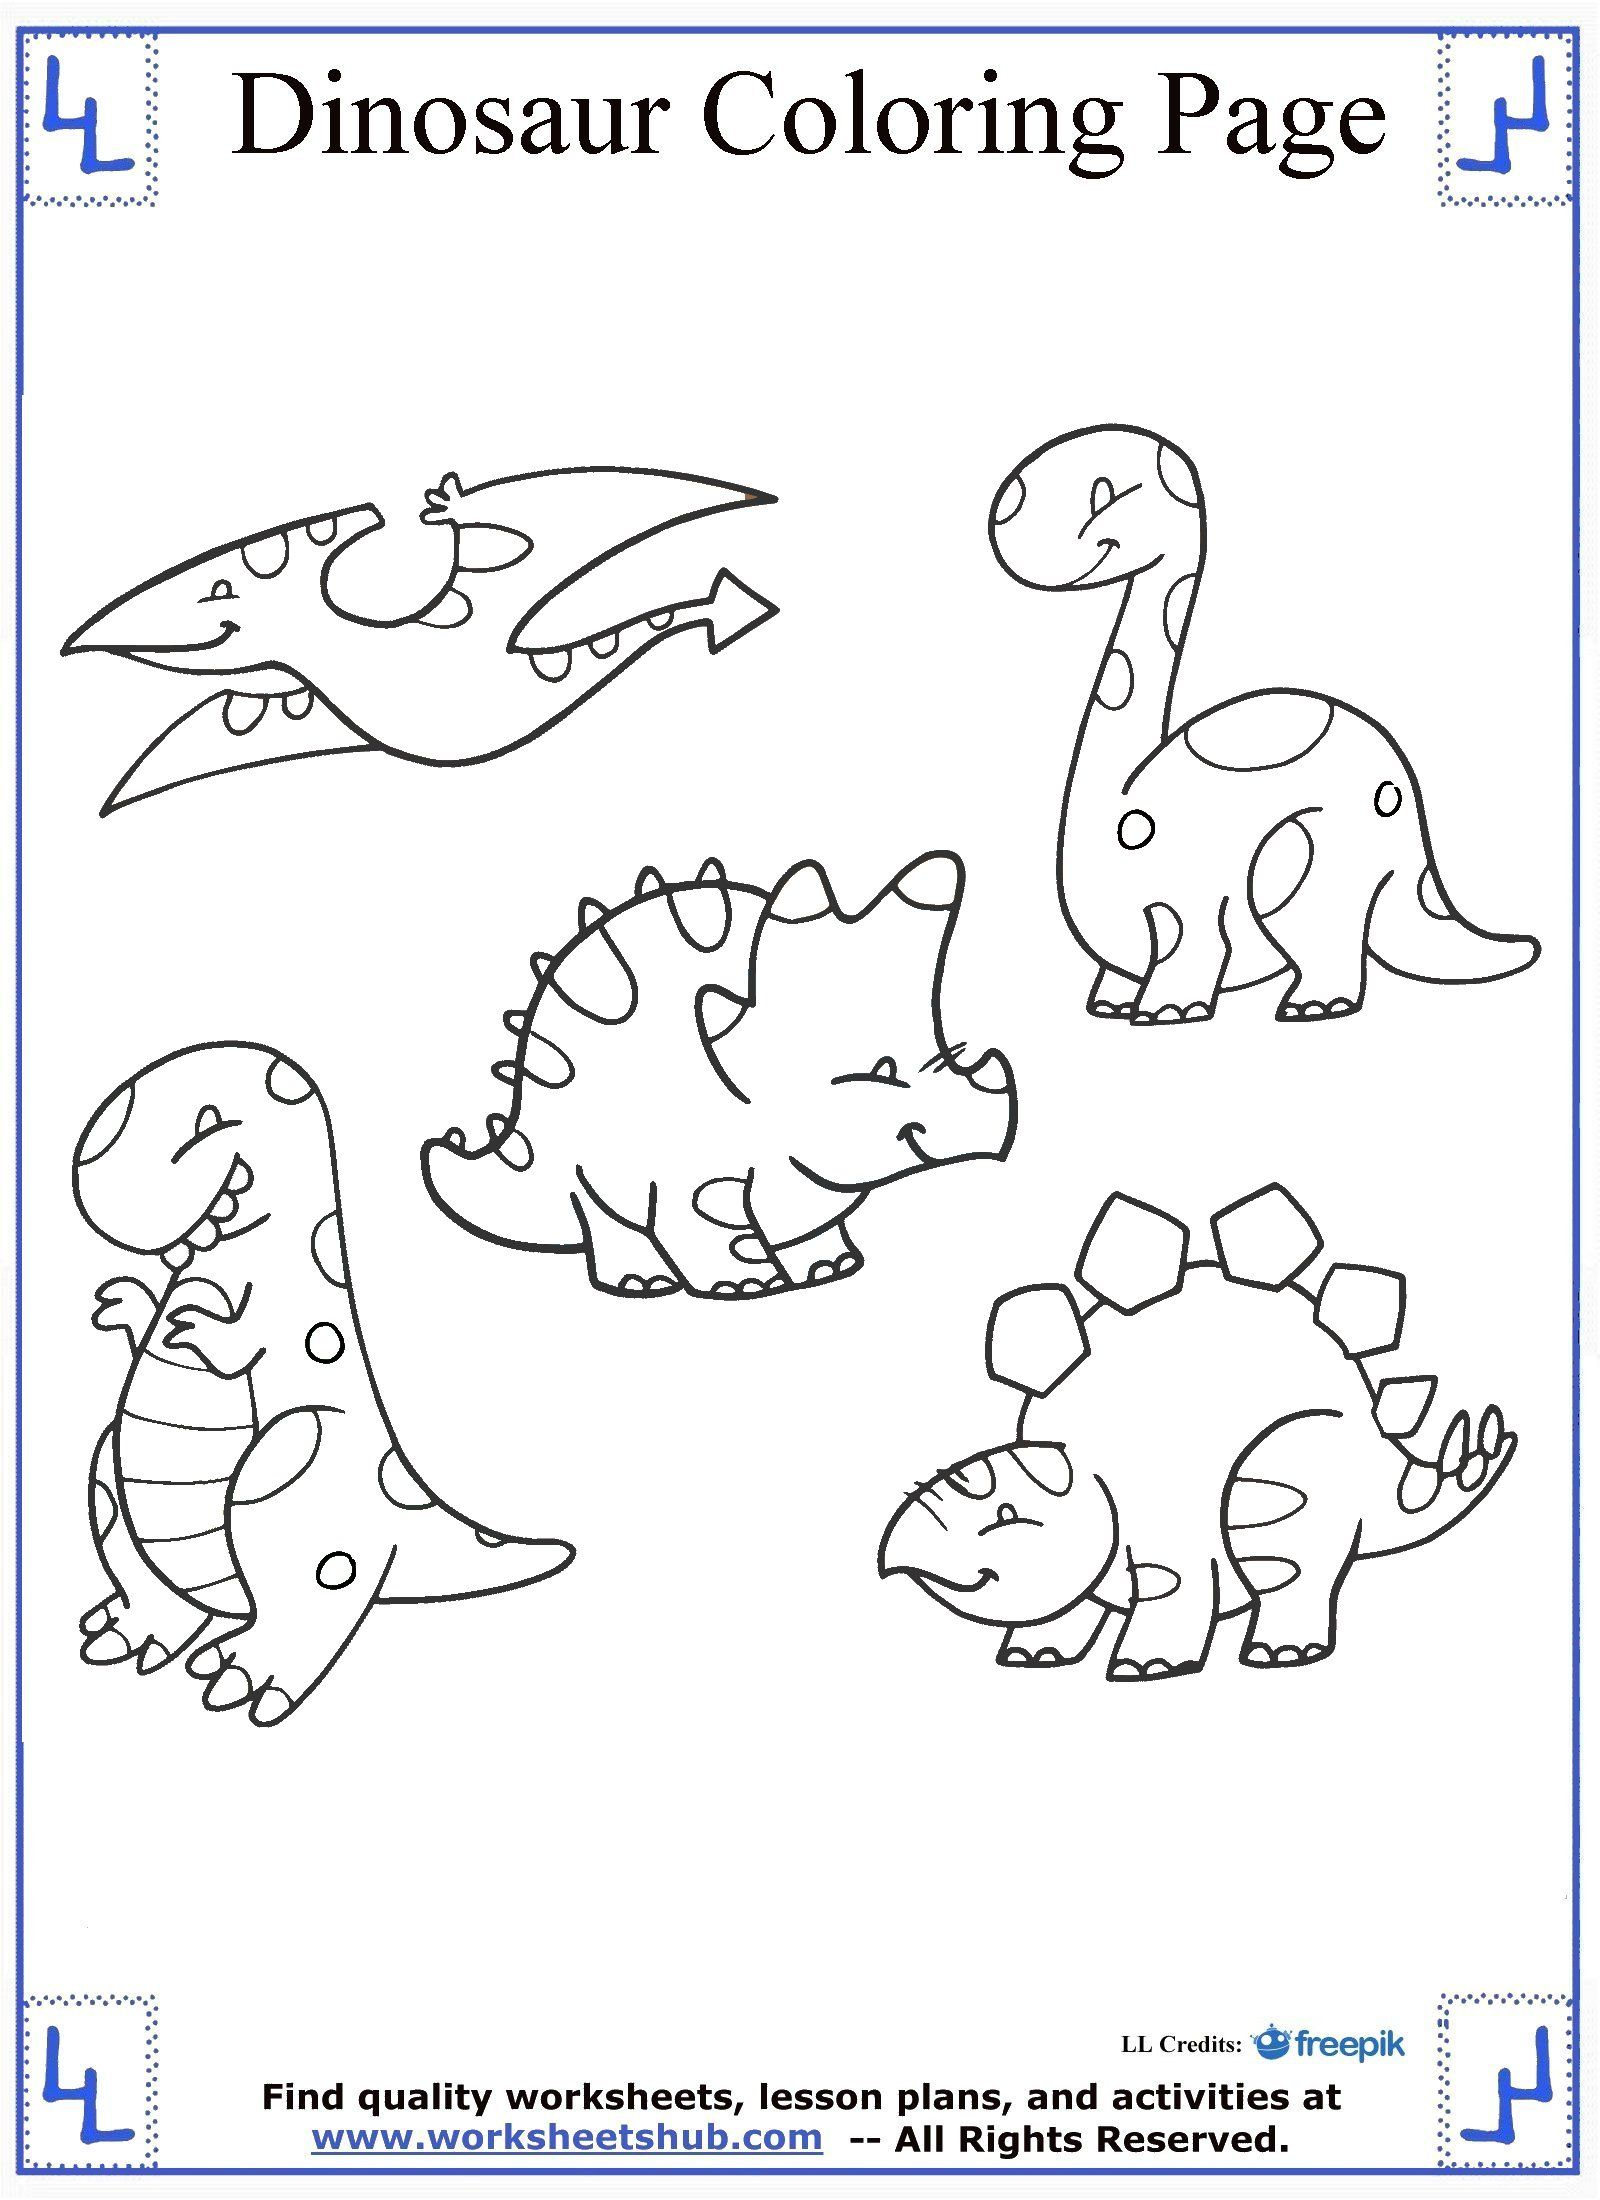 Dinosaur Coloring Pages Dinosaur Coloring Coloring Pages